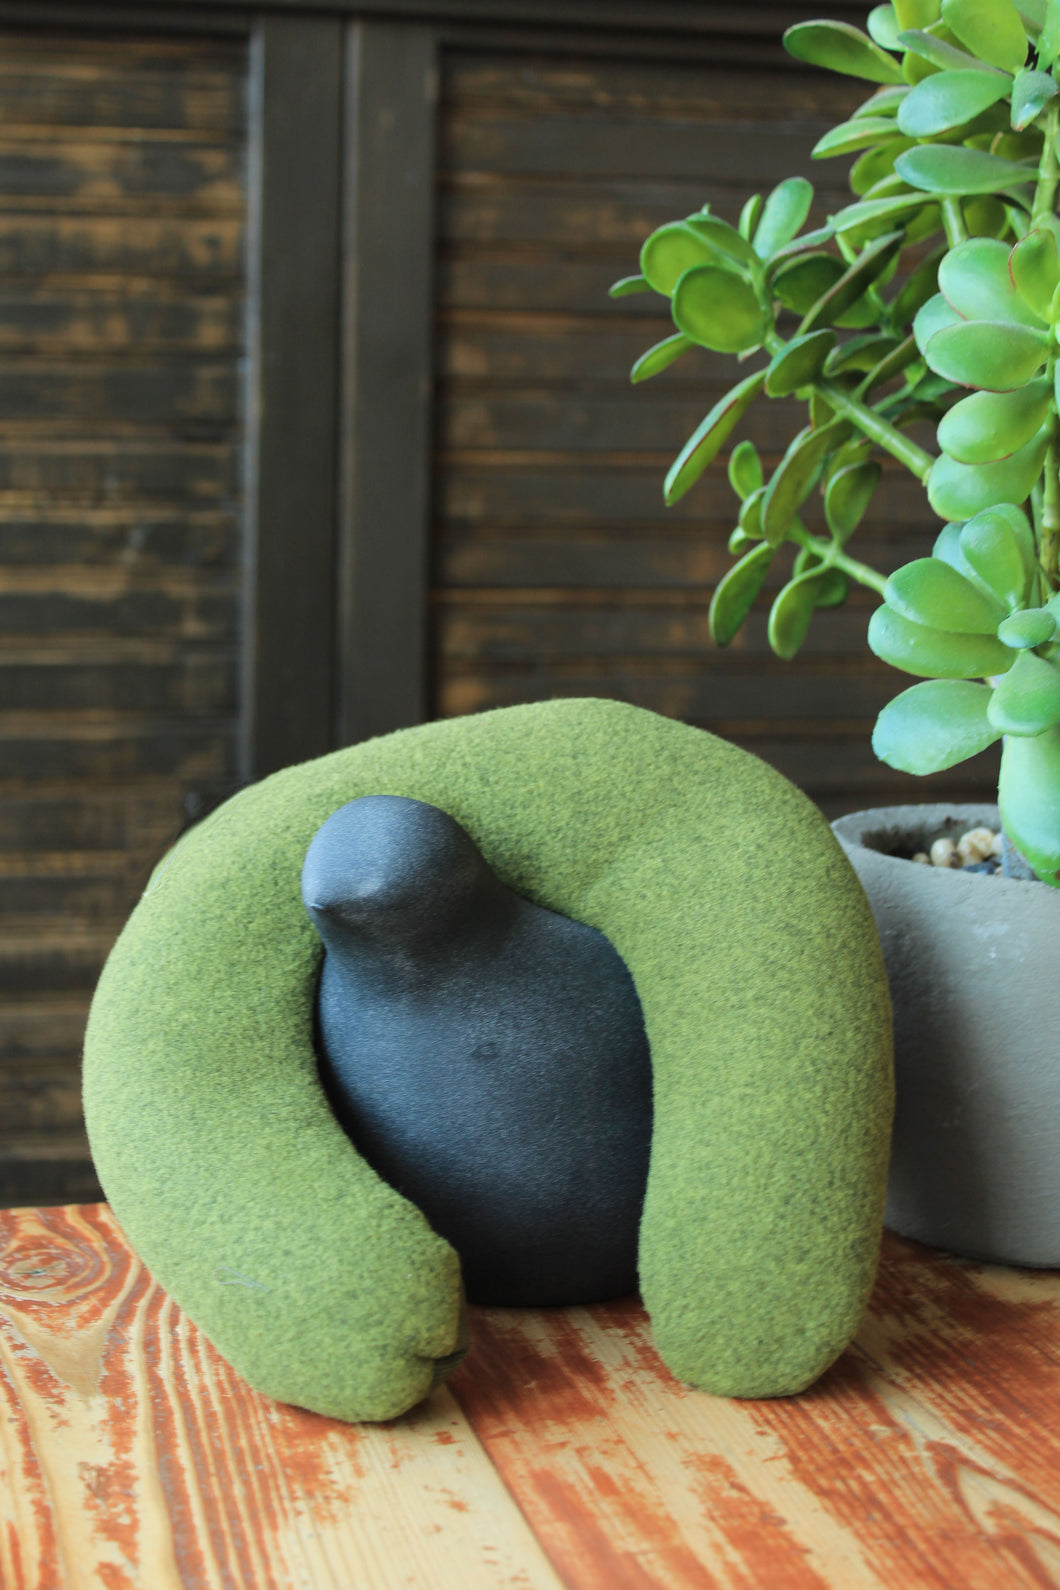 Tara Spa Therapy Neck Pillow in Green OIive color